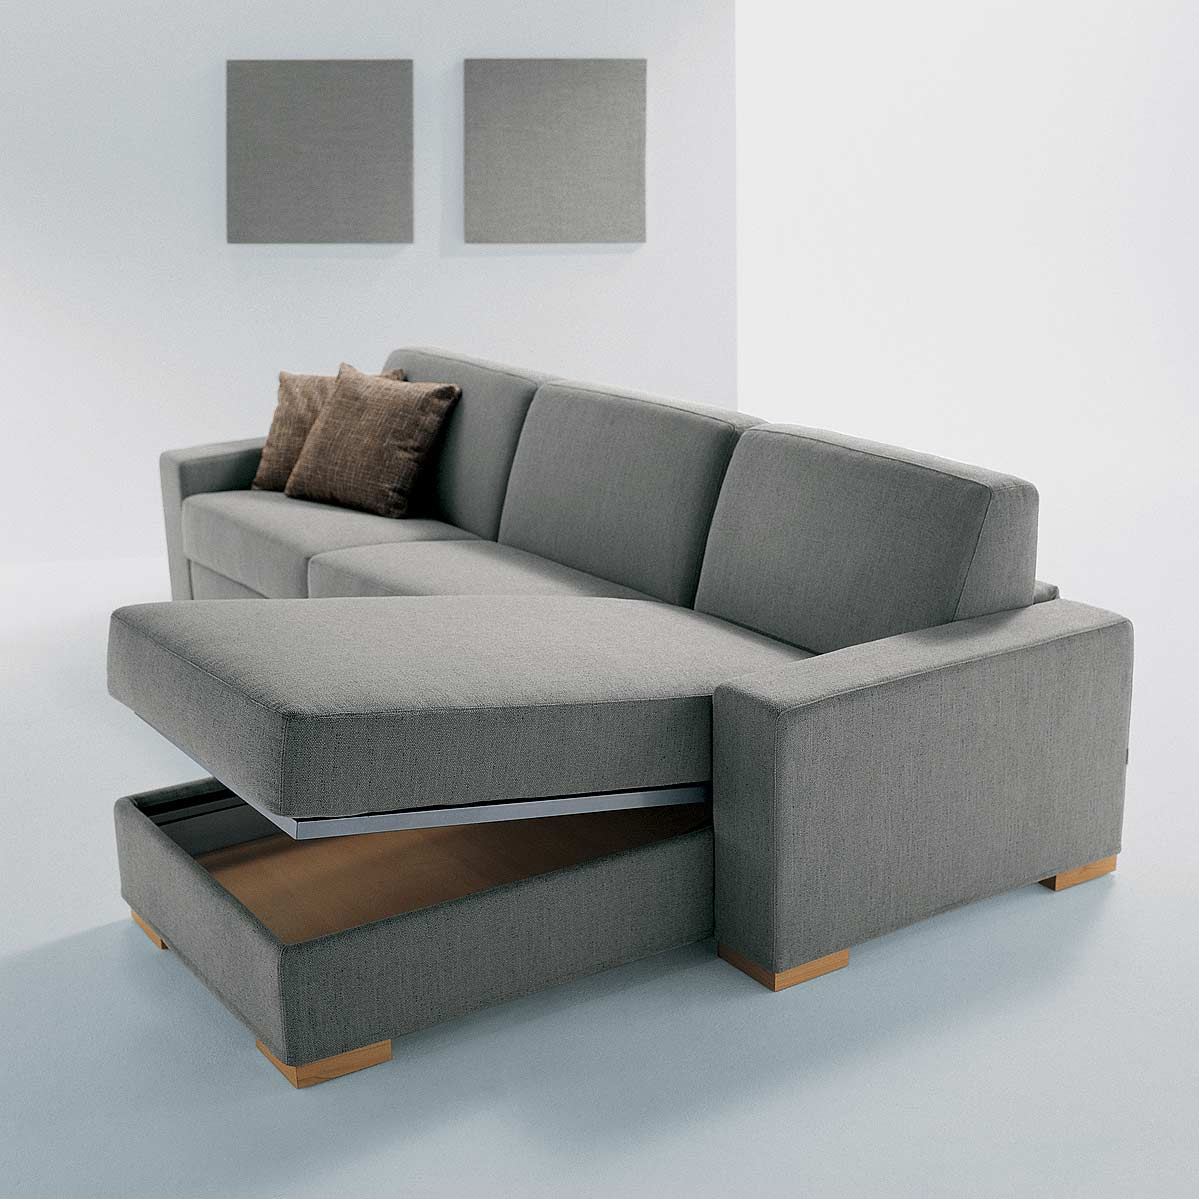 Couch Bed With Storage Click Clack Sofa Bed Sofa Chair Bed Modern Leather